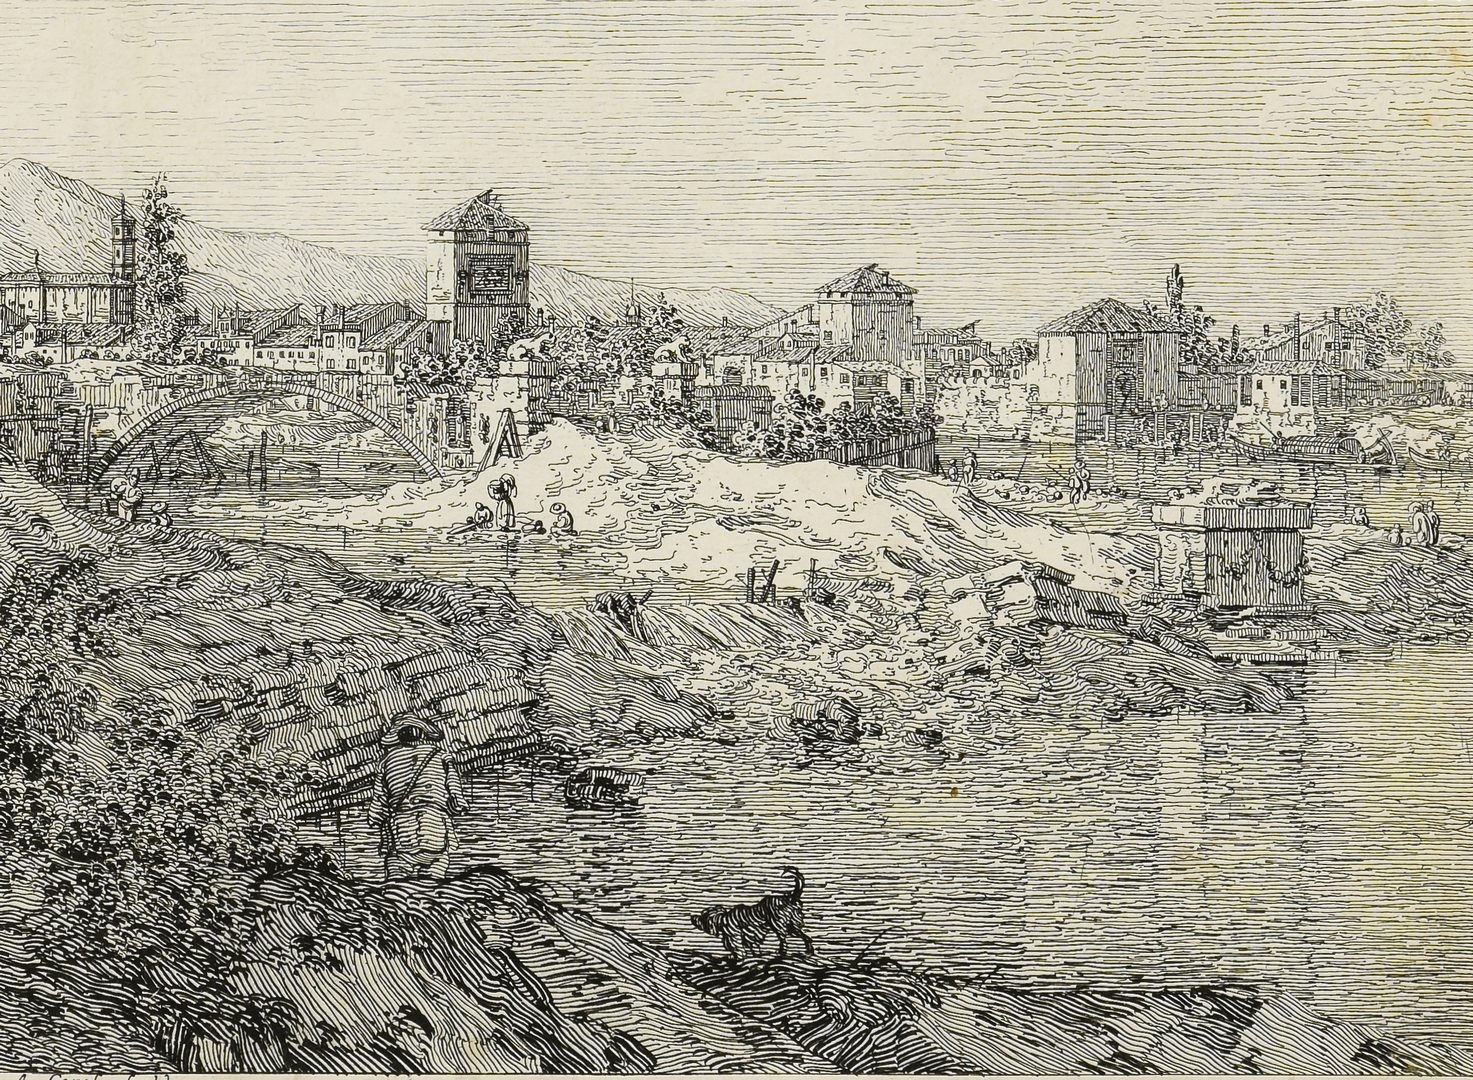 Lot 359: Giovanni Antonio Canaletto drypoint etching